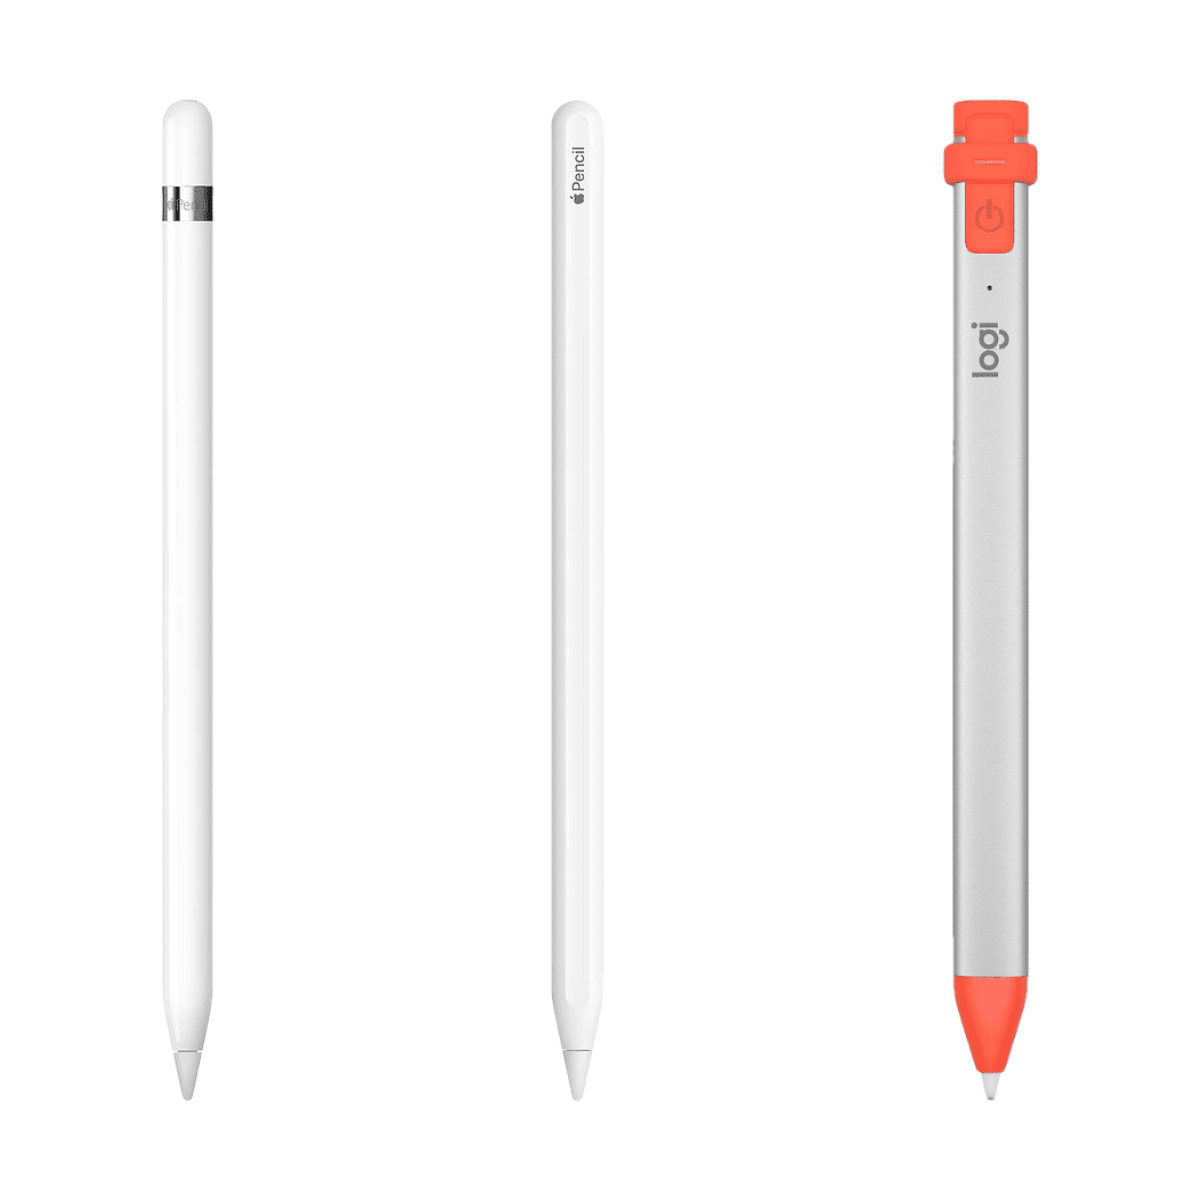 image of apple pencil, apple pencil 2, logitech crayon